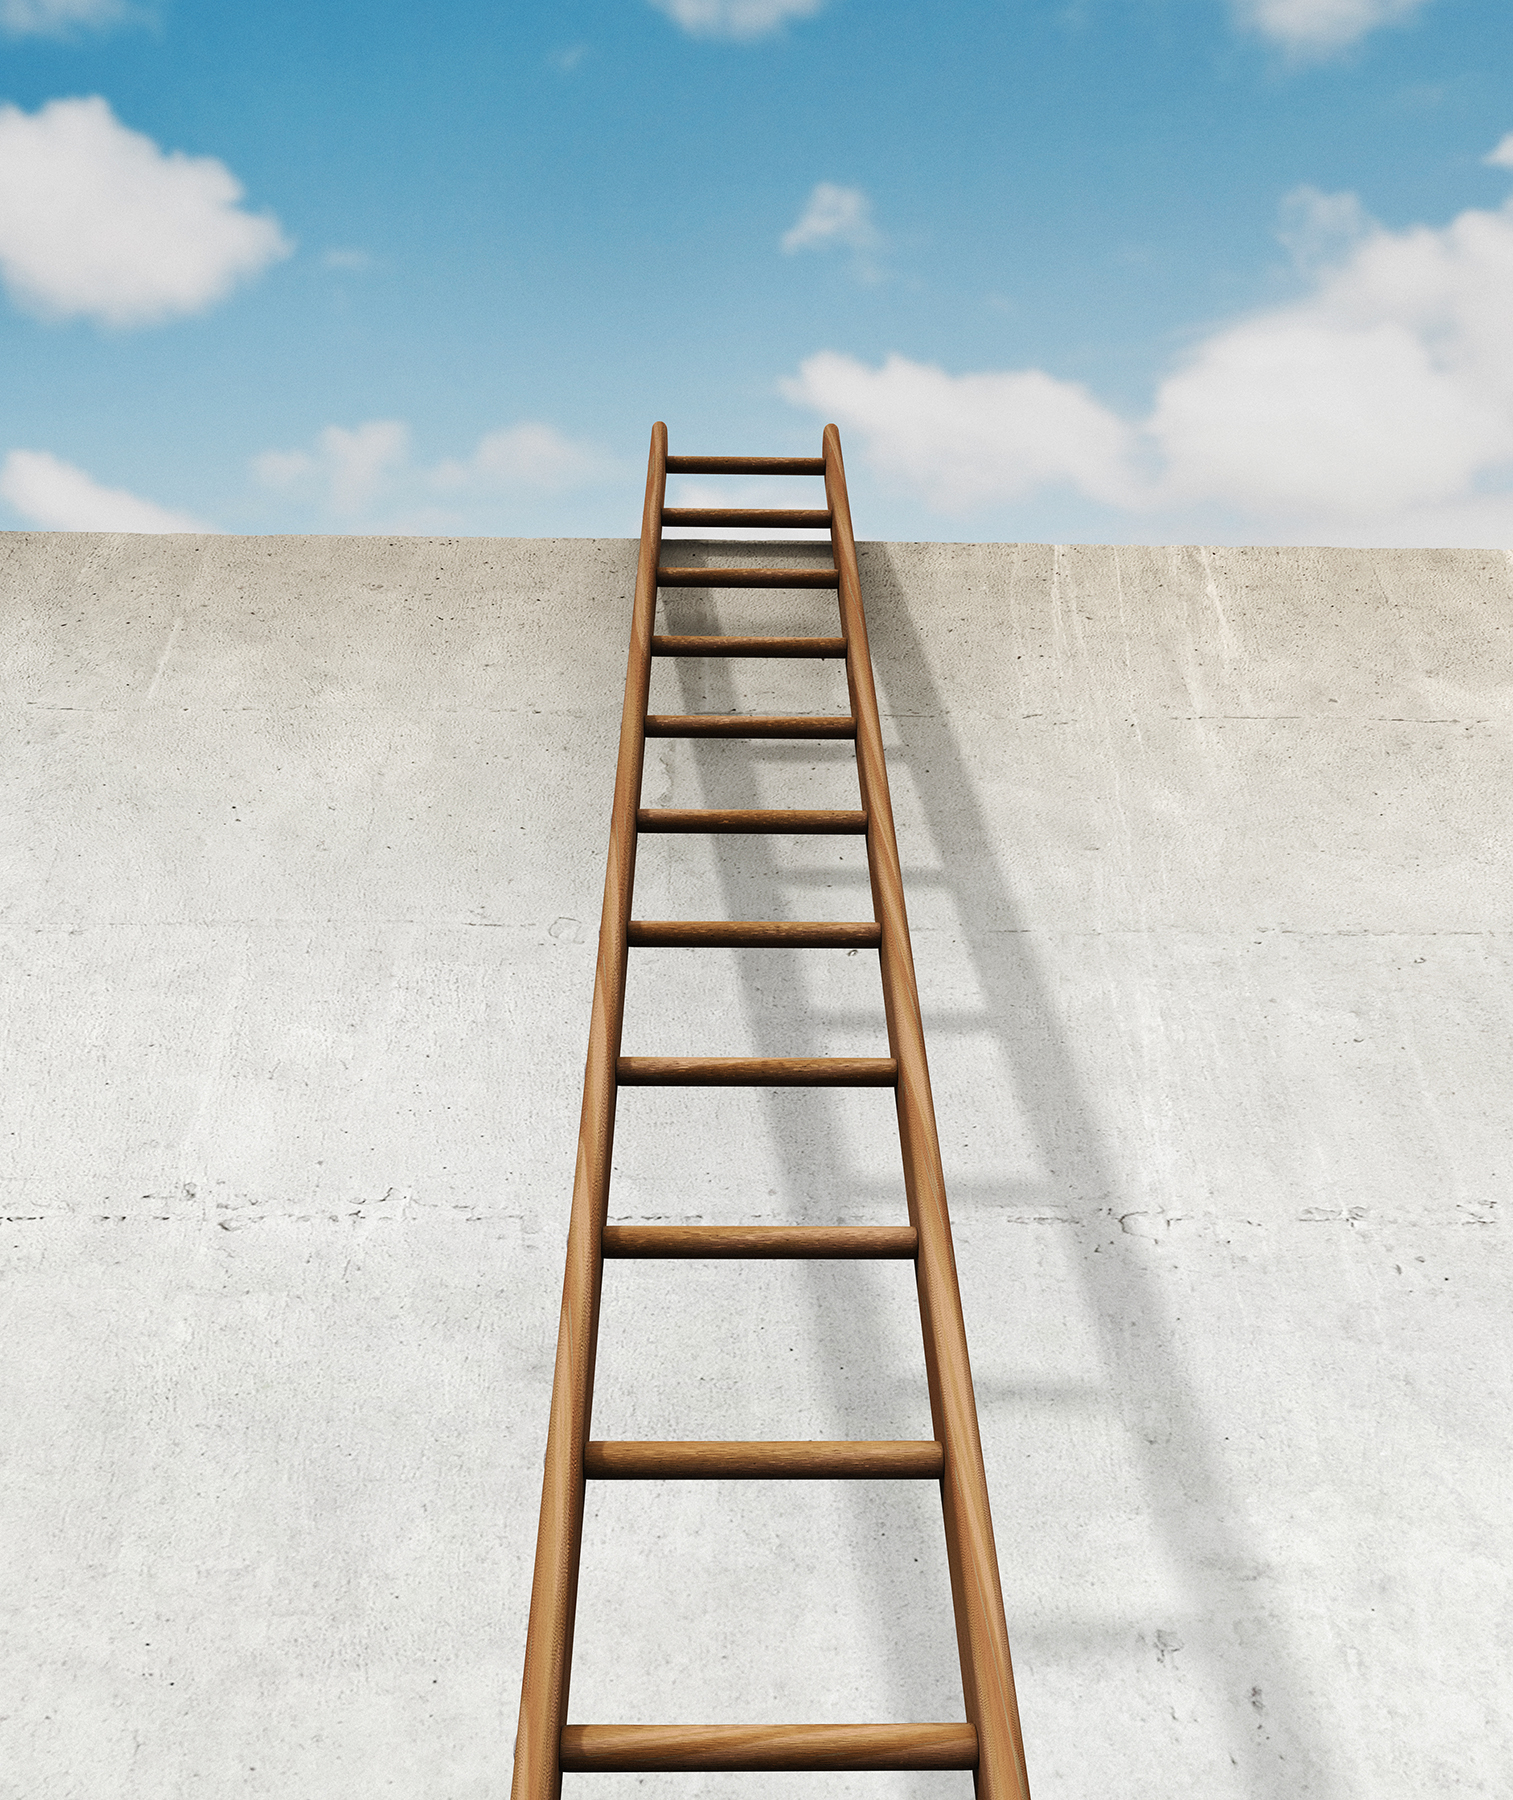 Ladder leading to the sky